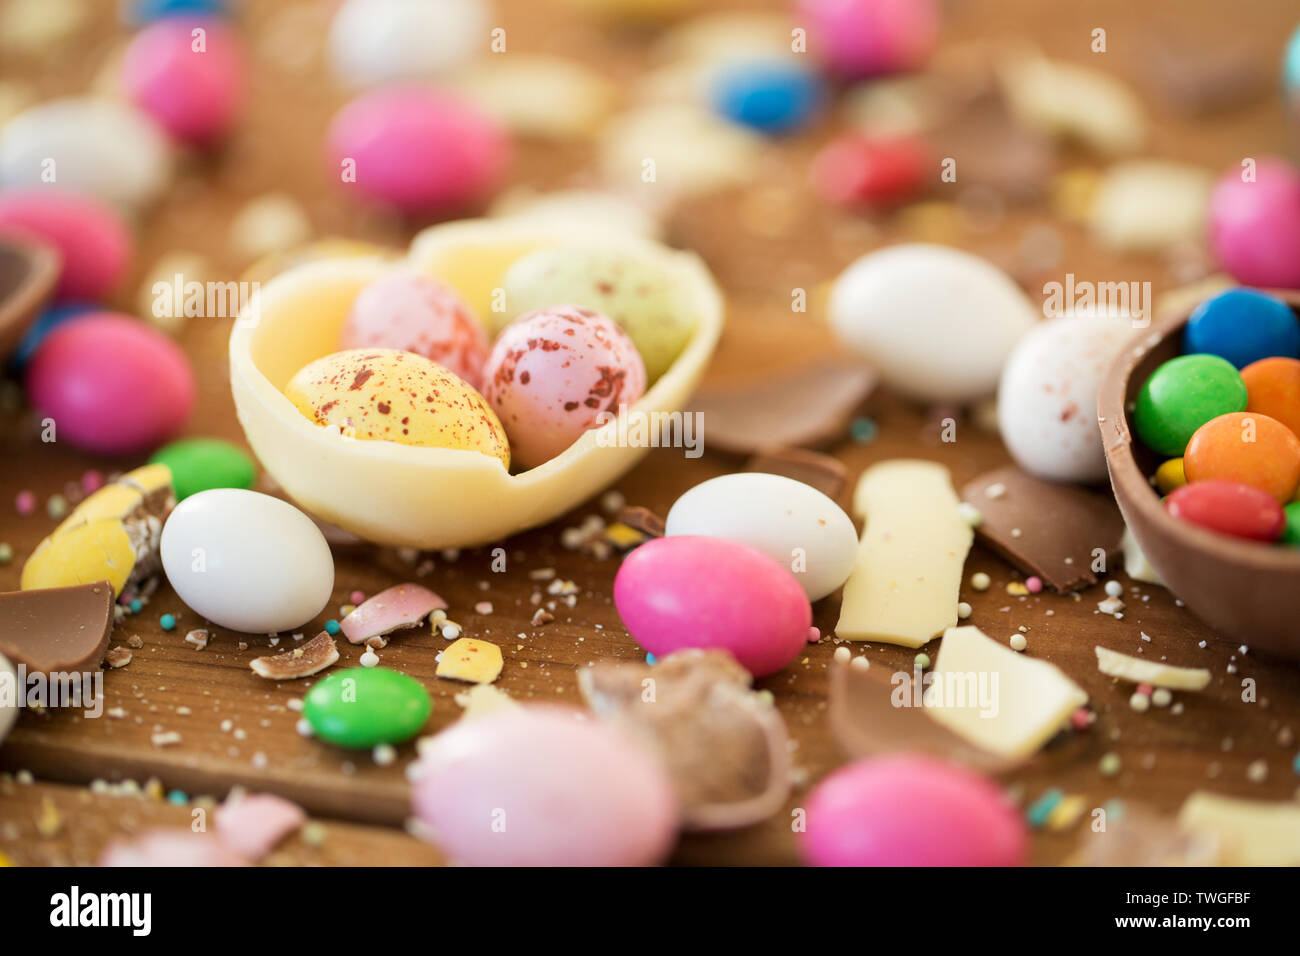 chocolate easter eggs and candy drops on table - Stock Image